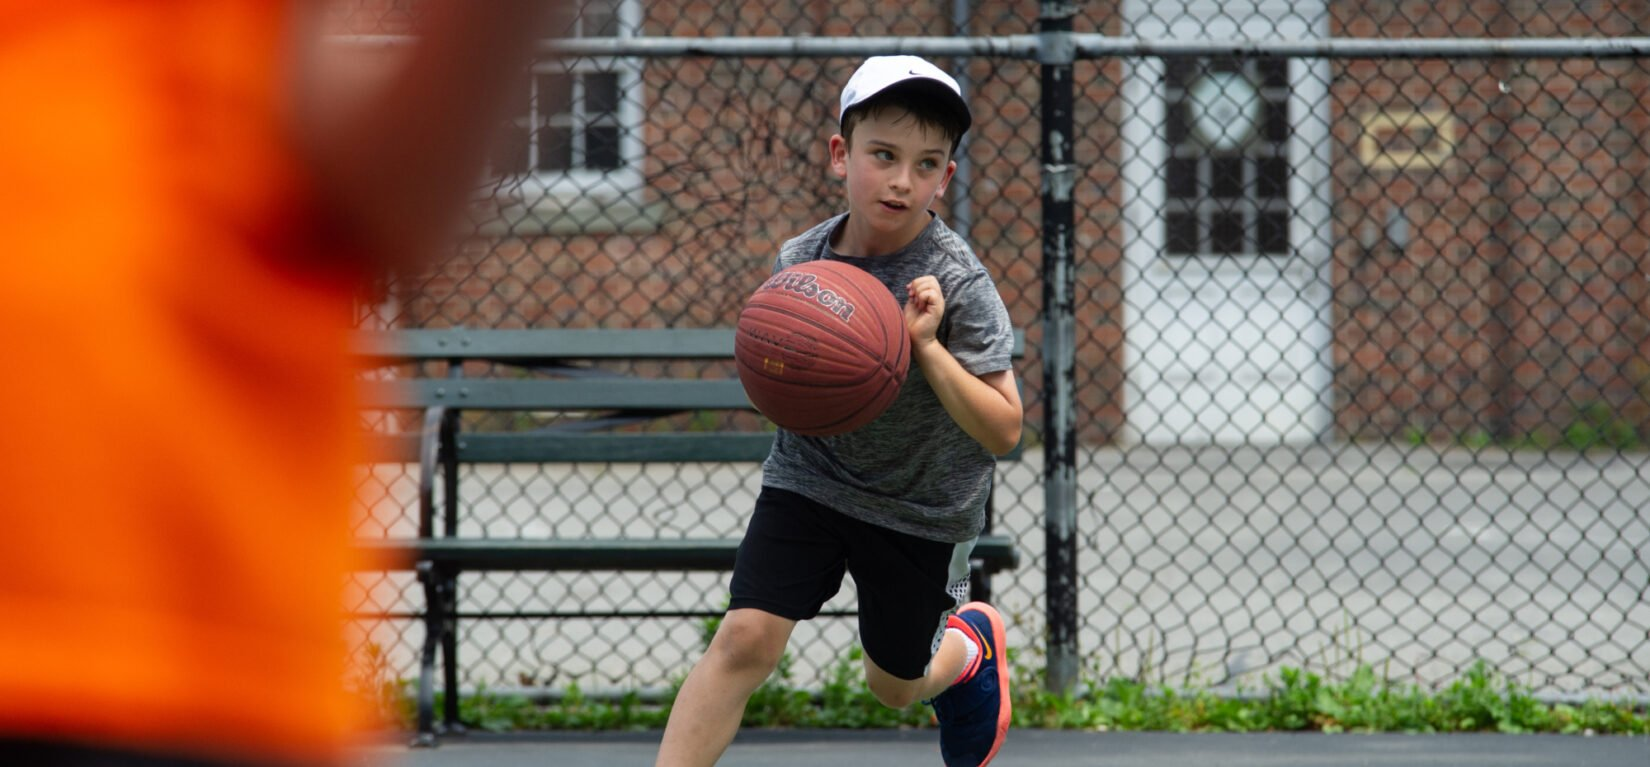 A young baller caught in mid-dribble